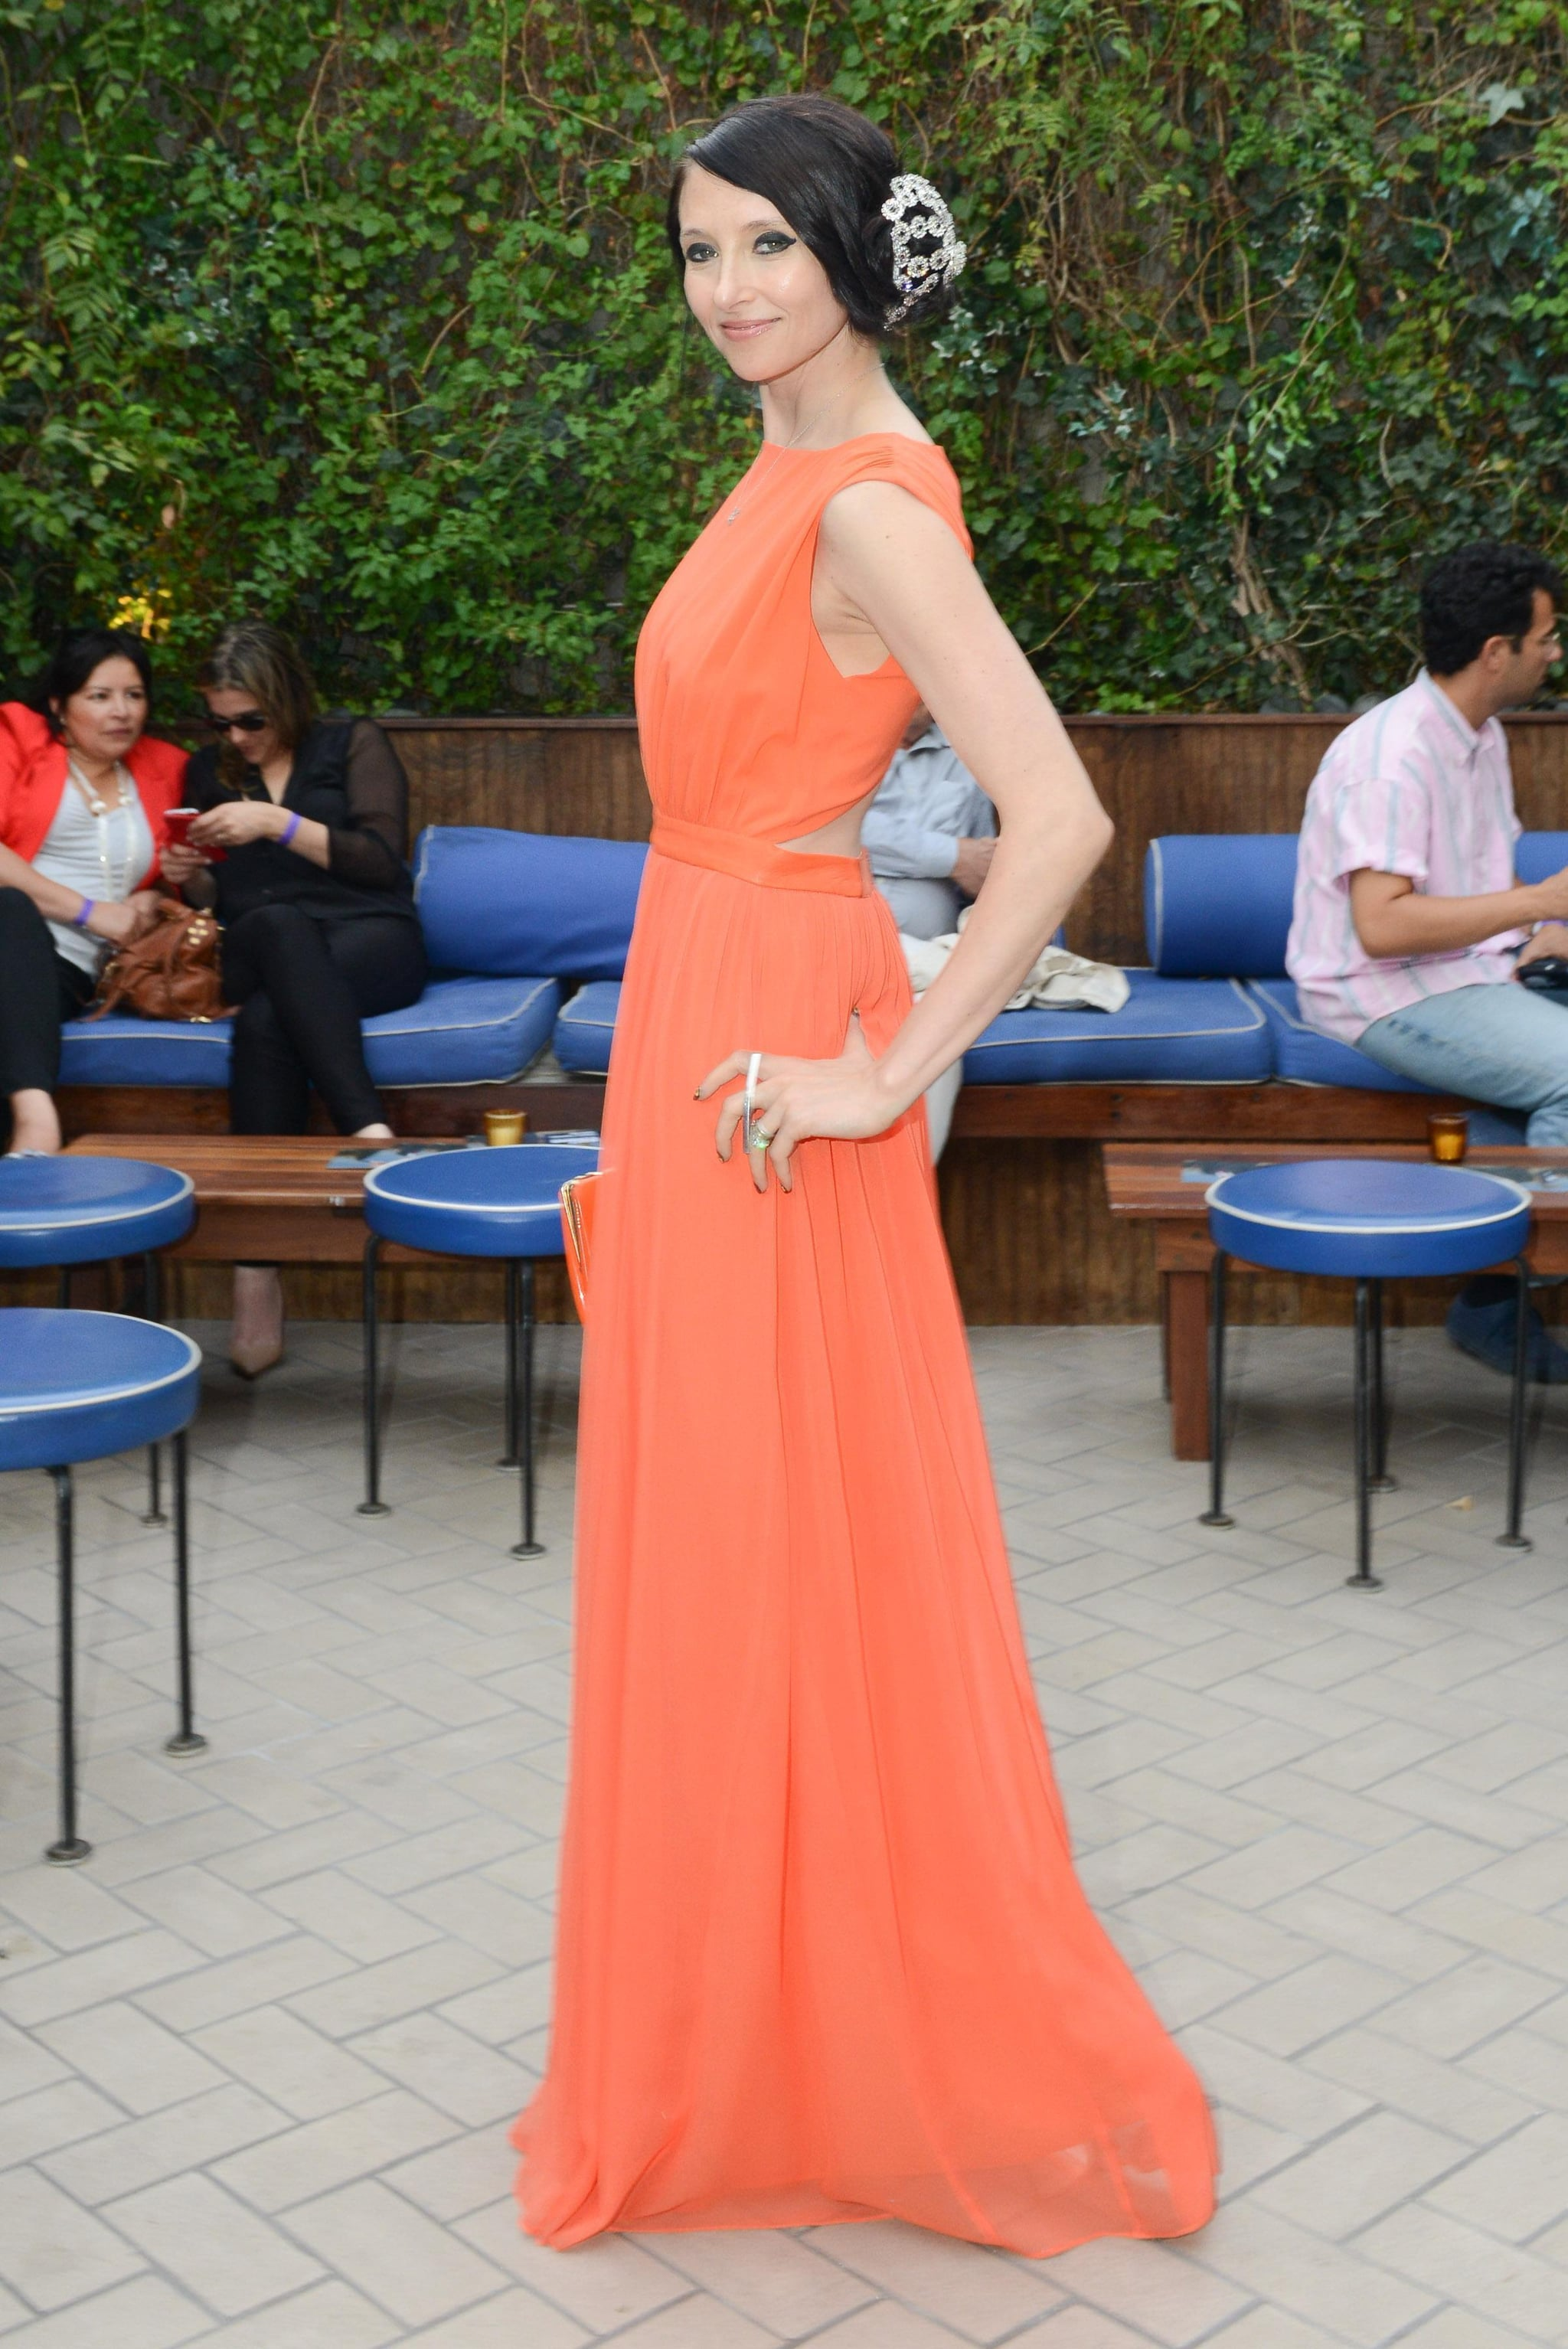 At the Young New York For Scott Stringer event, Stacey Bendet couldn't be missed in her bright orange design.